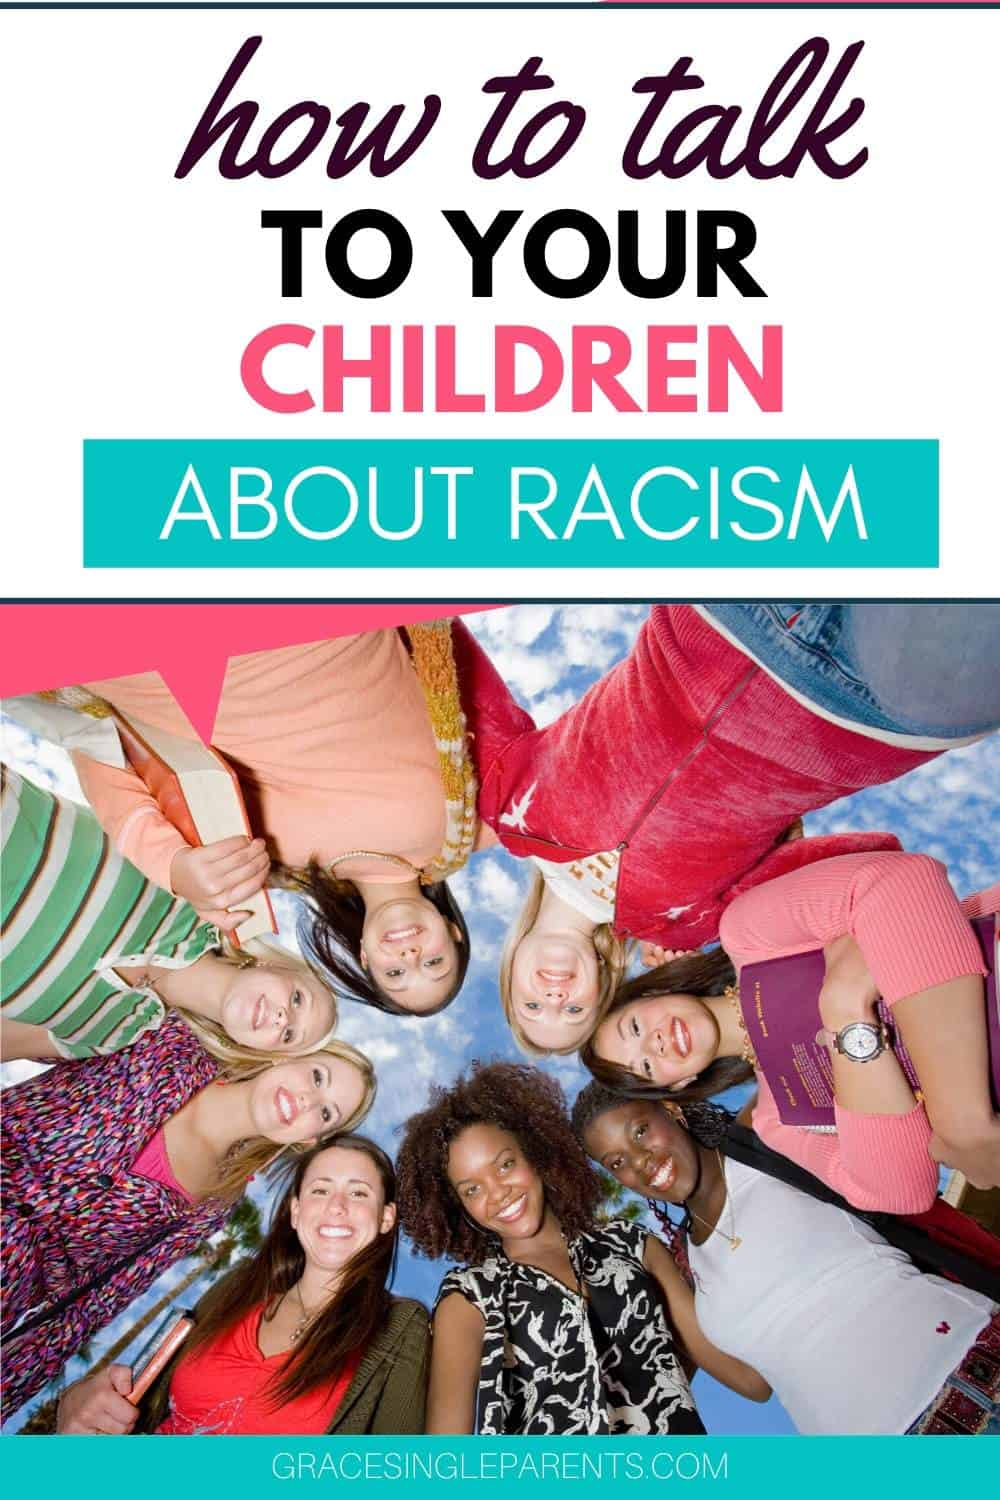 Are you Ready to Talk to Your Kids About Racism?